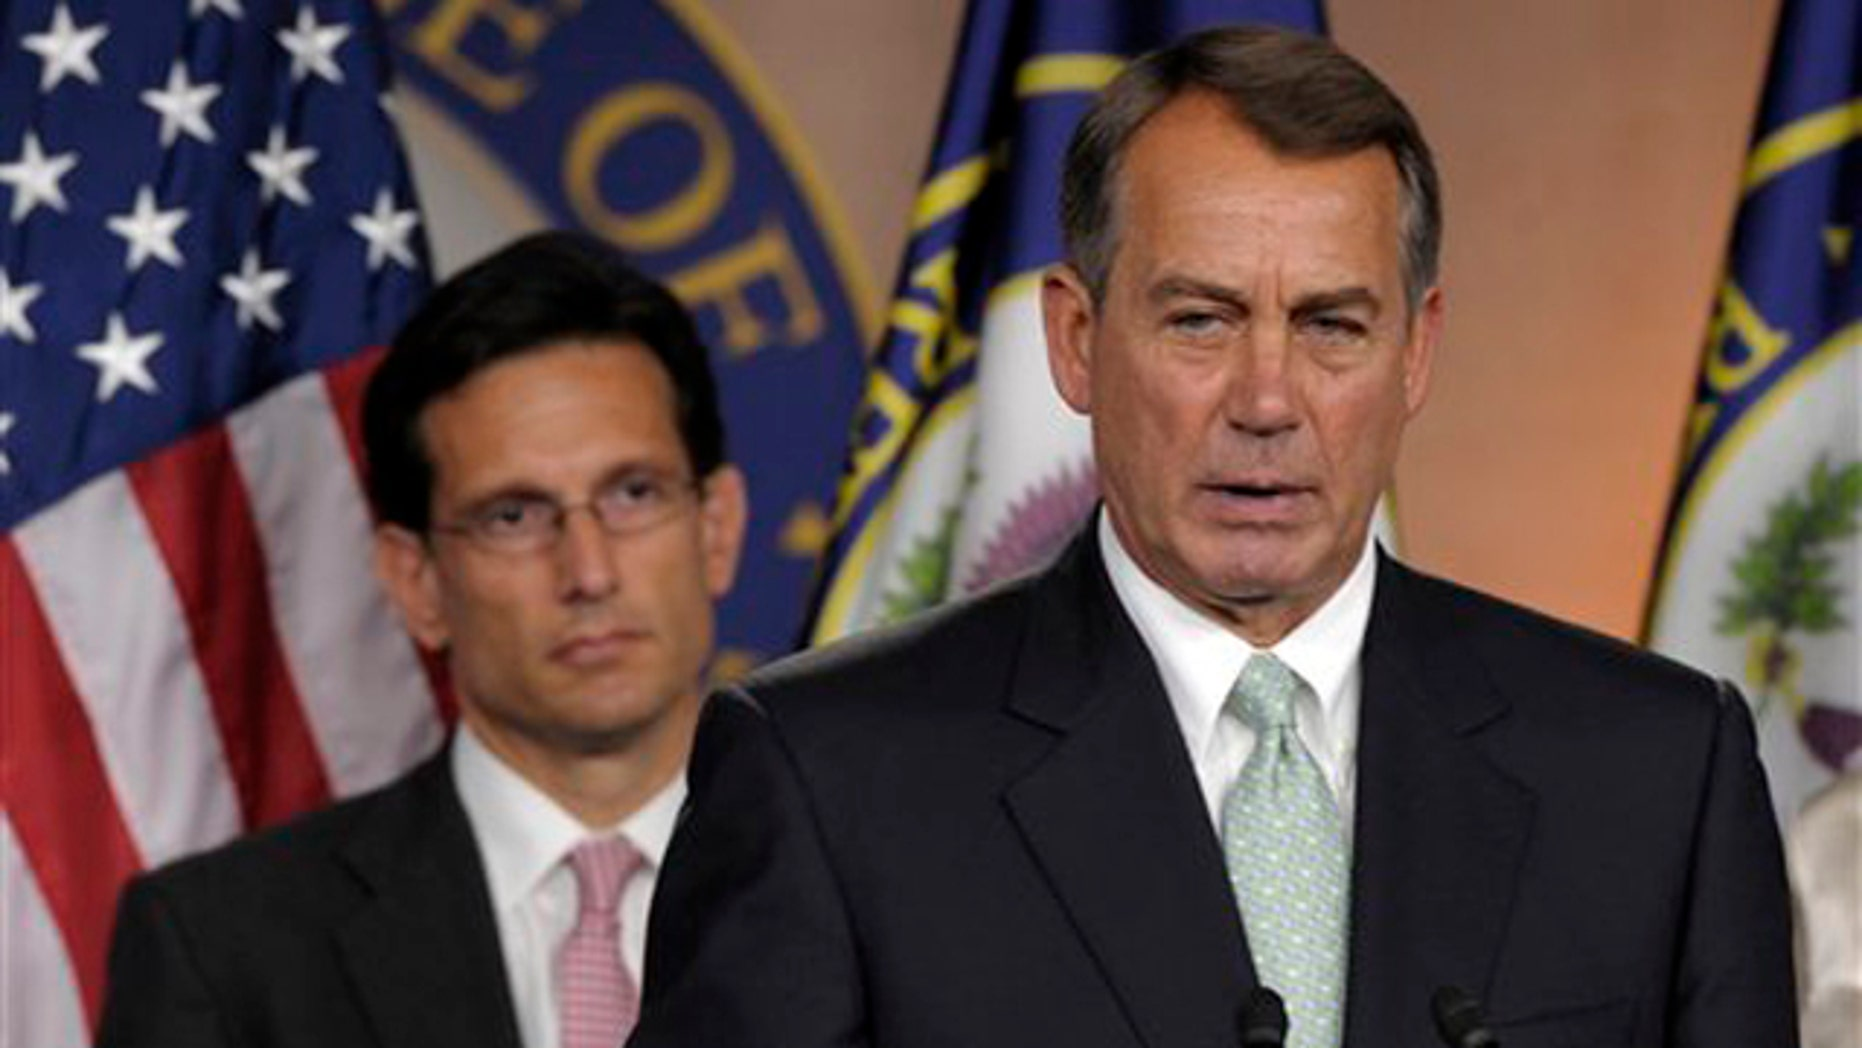 House Speaker John Boehner, right, speaks during a news conference with House Majority Leader Eric Cantor on Capitol Hill in Washington July 15.